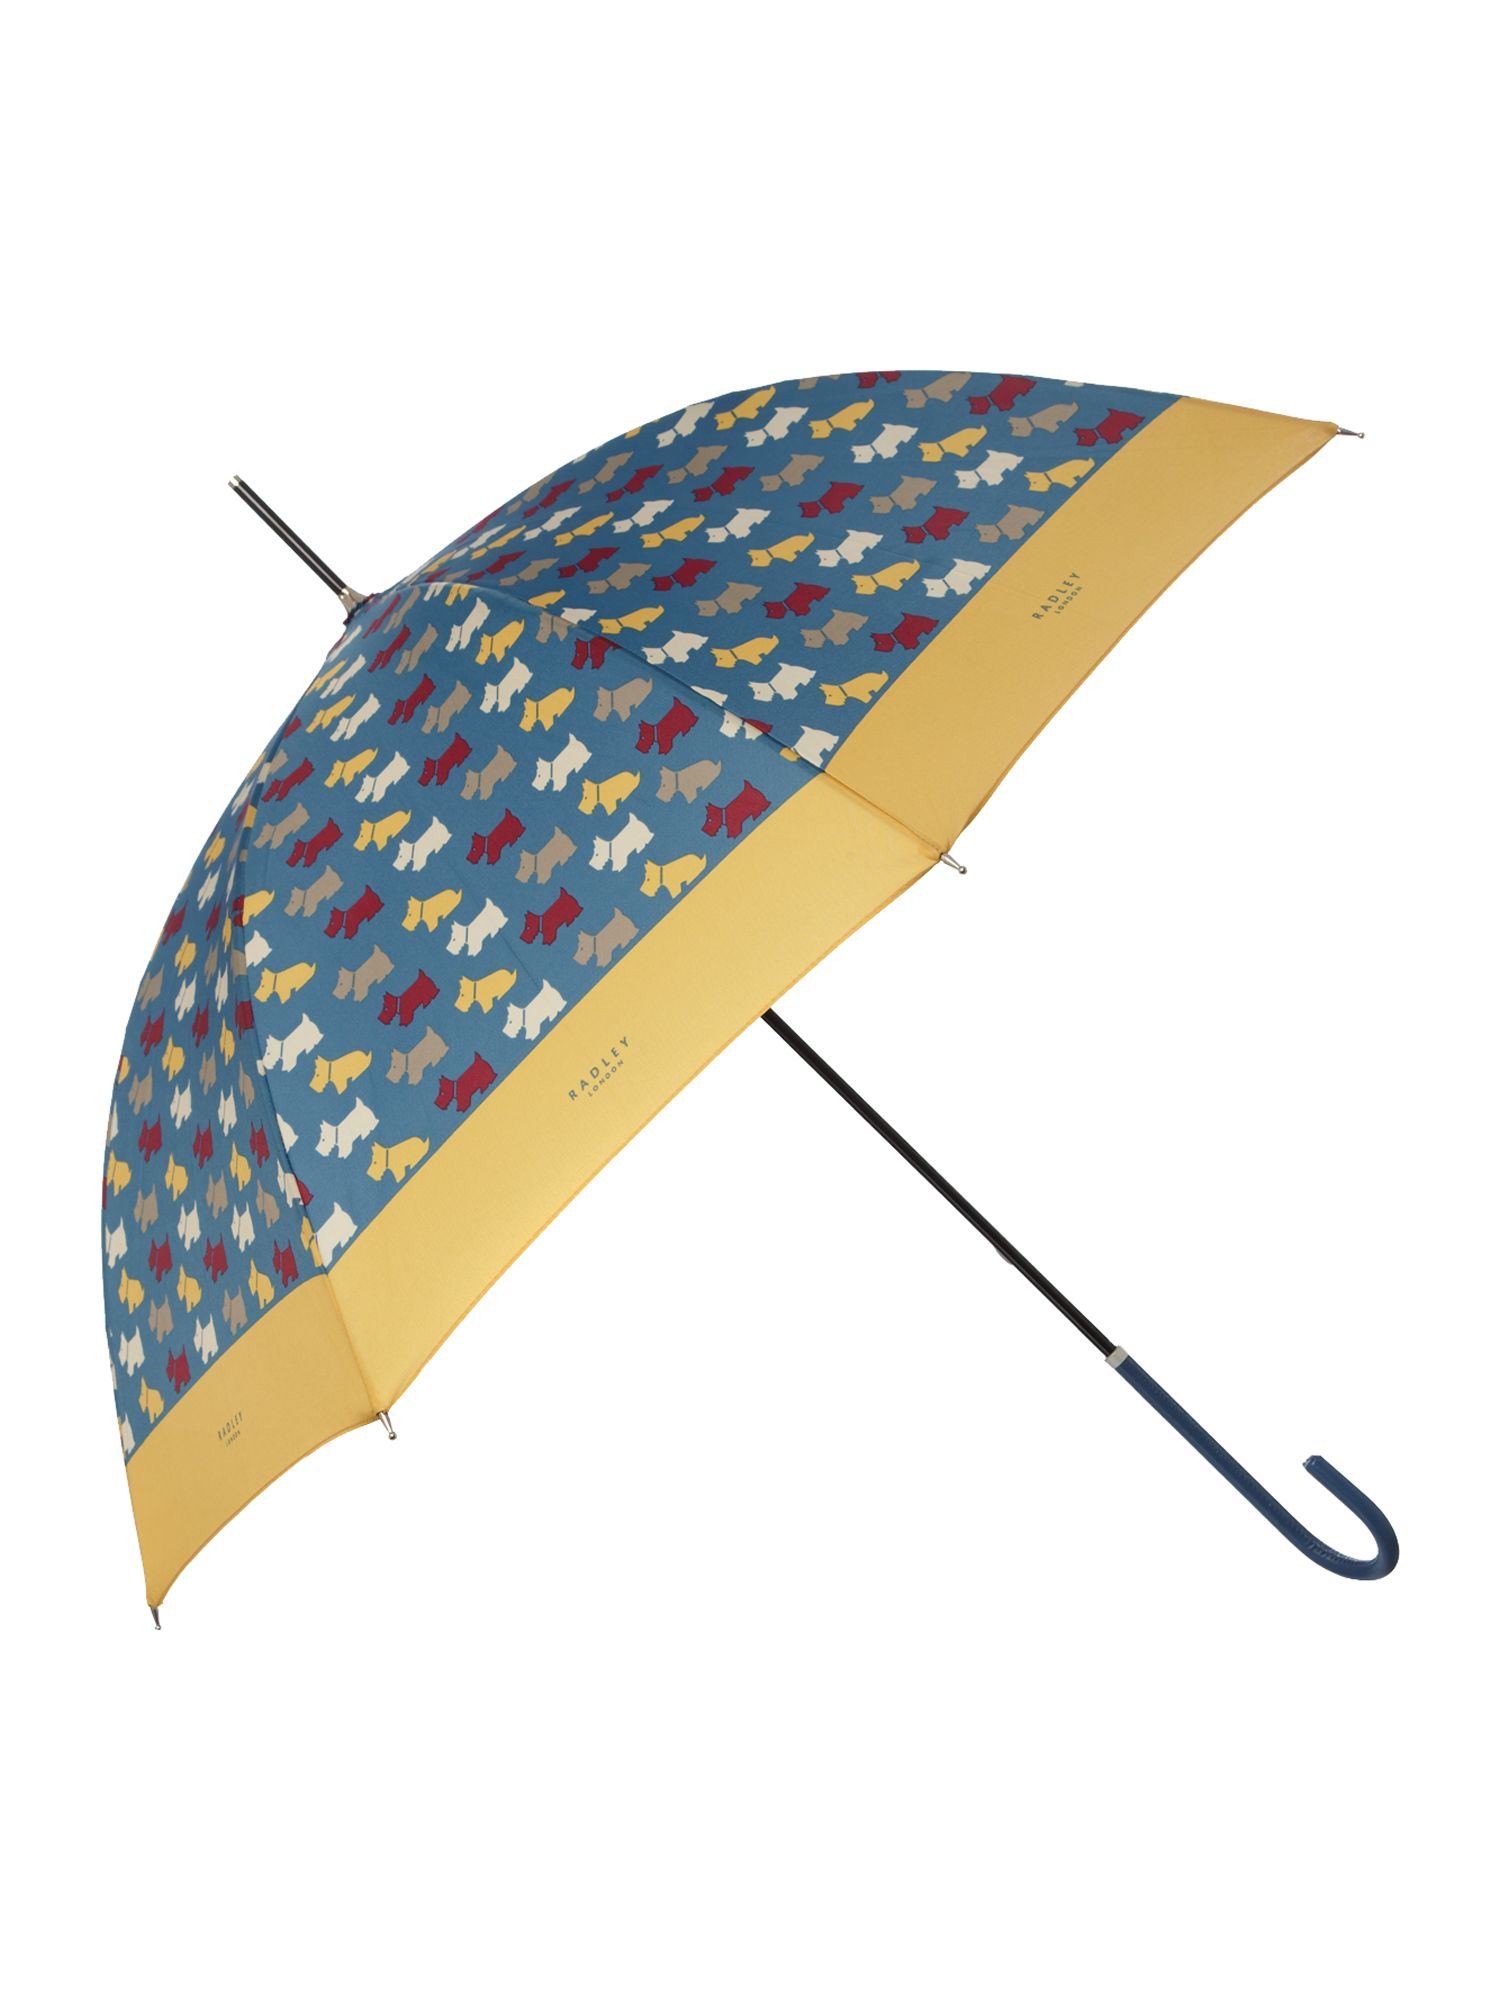 Dog print walker umbrella